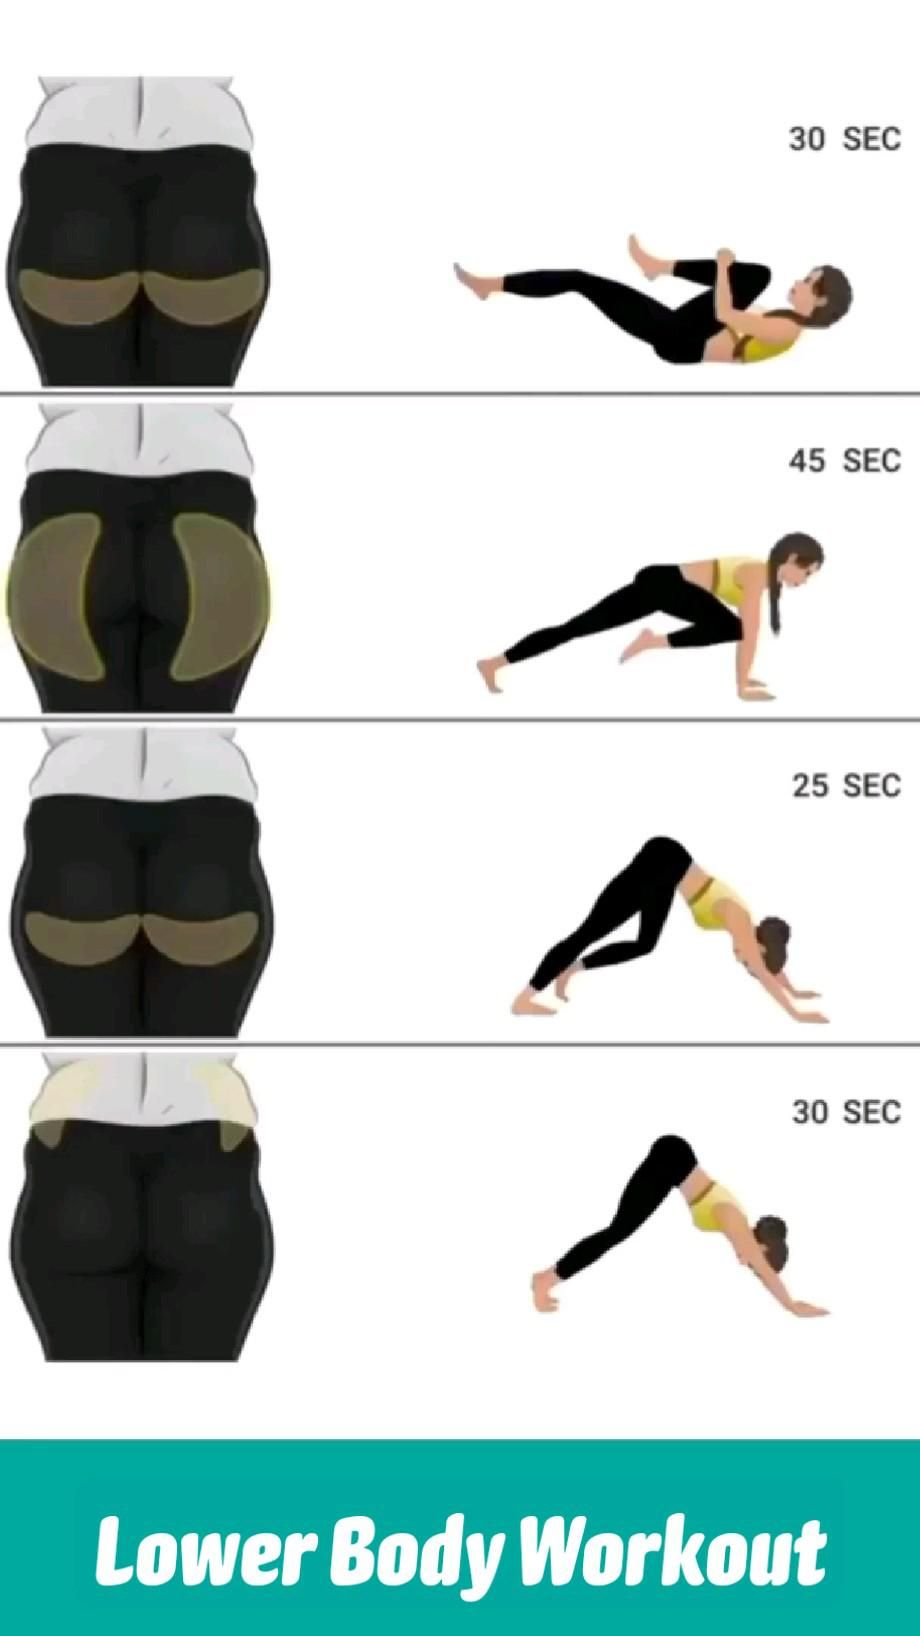 Lower Body Workout   workout video   at home workout   thigh exercises   butt workout